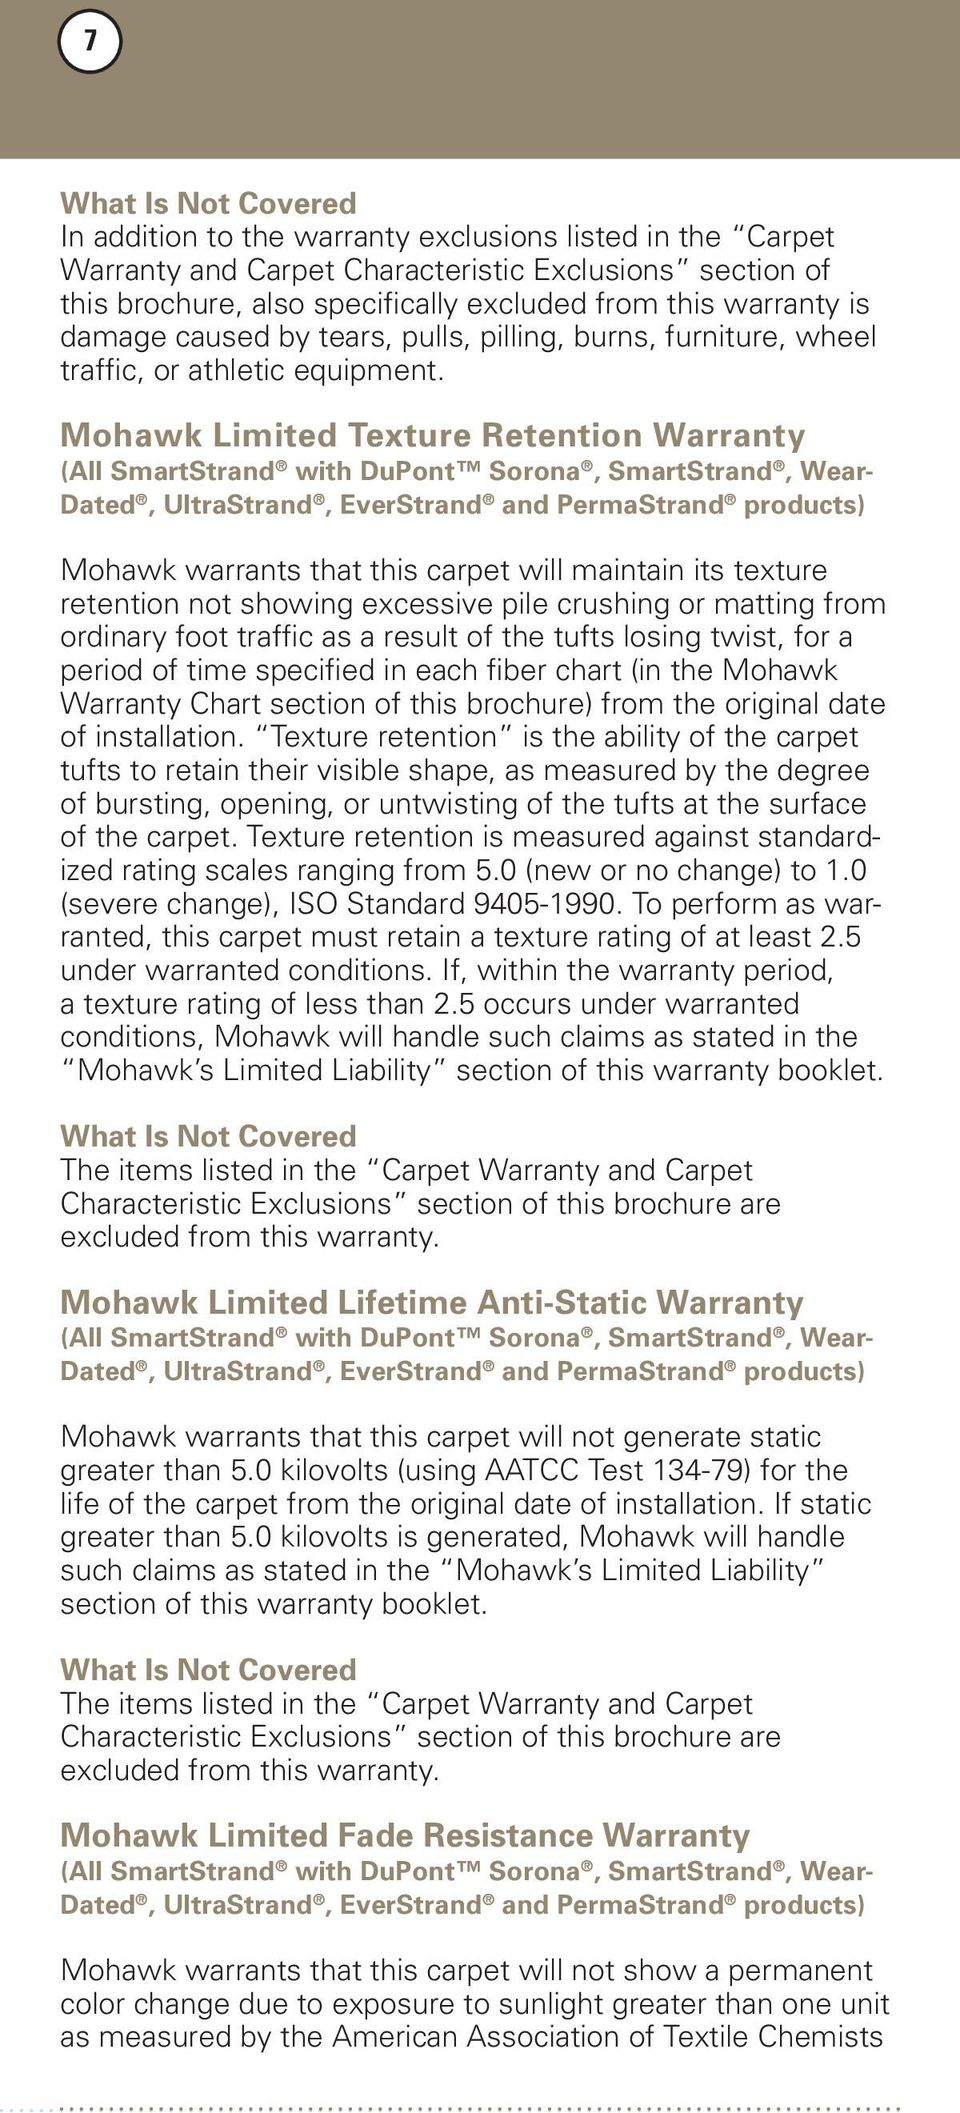 Mohawk Limited Texture Retention Warranty (All SmartStrand with DuPont Sorona, SmartStrand, Wear- Dated, UltraStrand, EverStrand and PermaStrand products) Mohawk warrants that this carpet will